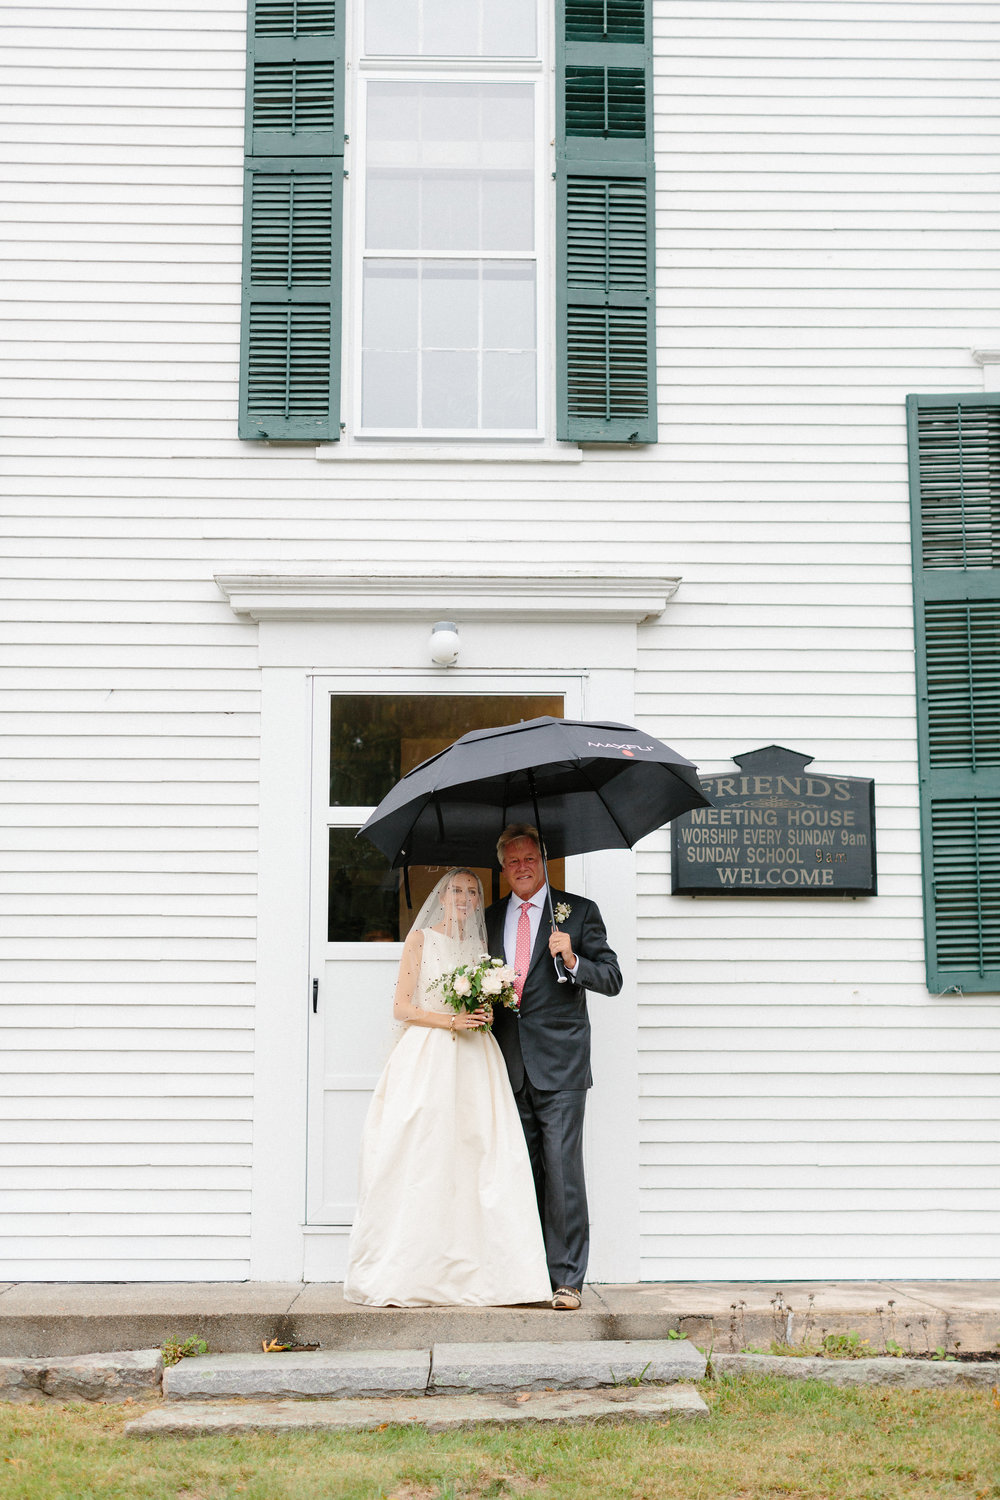 - It started raining right as we were leaving for the church so we had to resort to our rain plan. Luckily my father was prepared with the largest umbrella on the planet! I worried about rain all week, but when it actually happened, I couldn't have cared less.